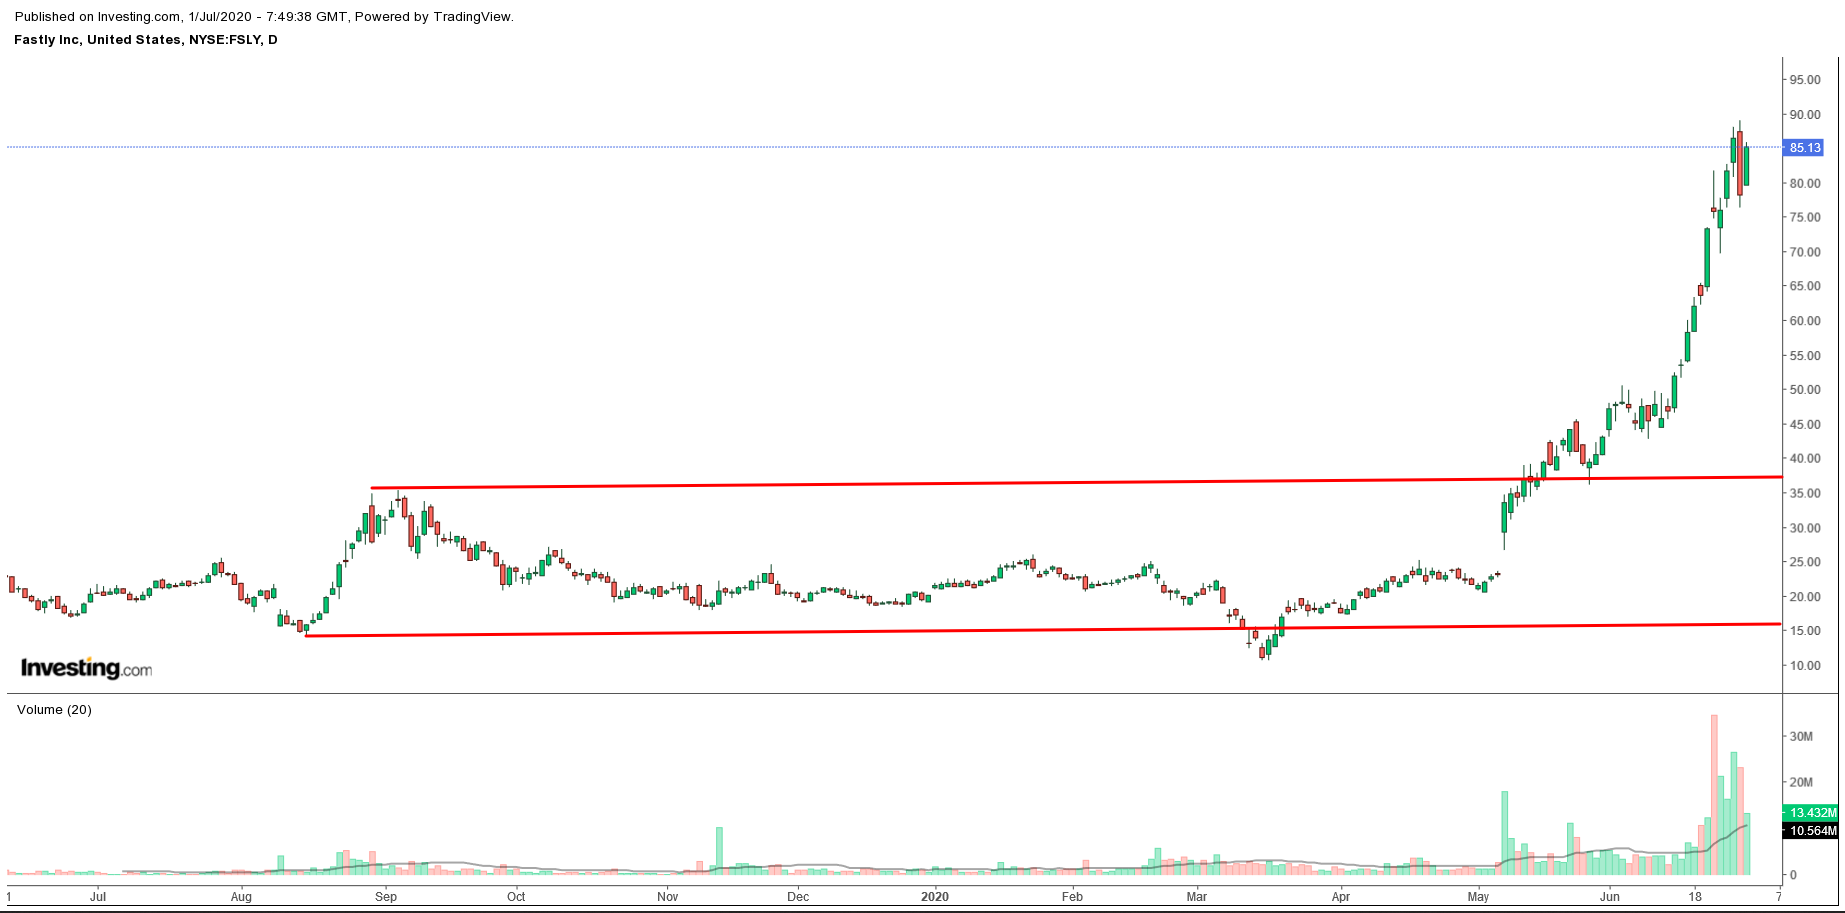 Fastly Daily Chart